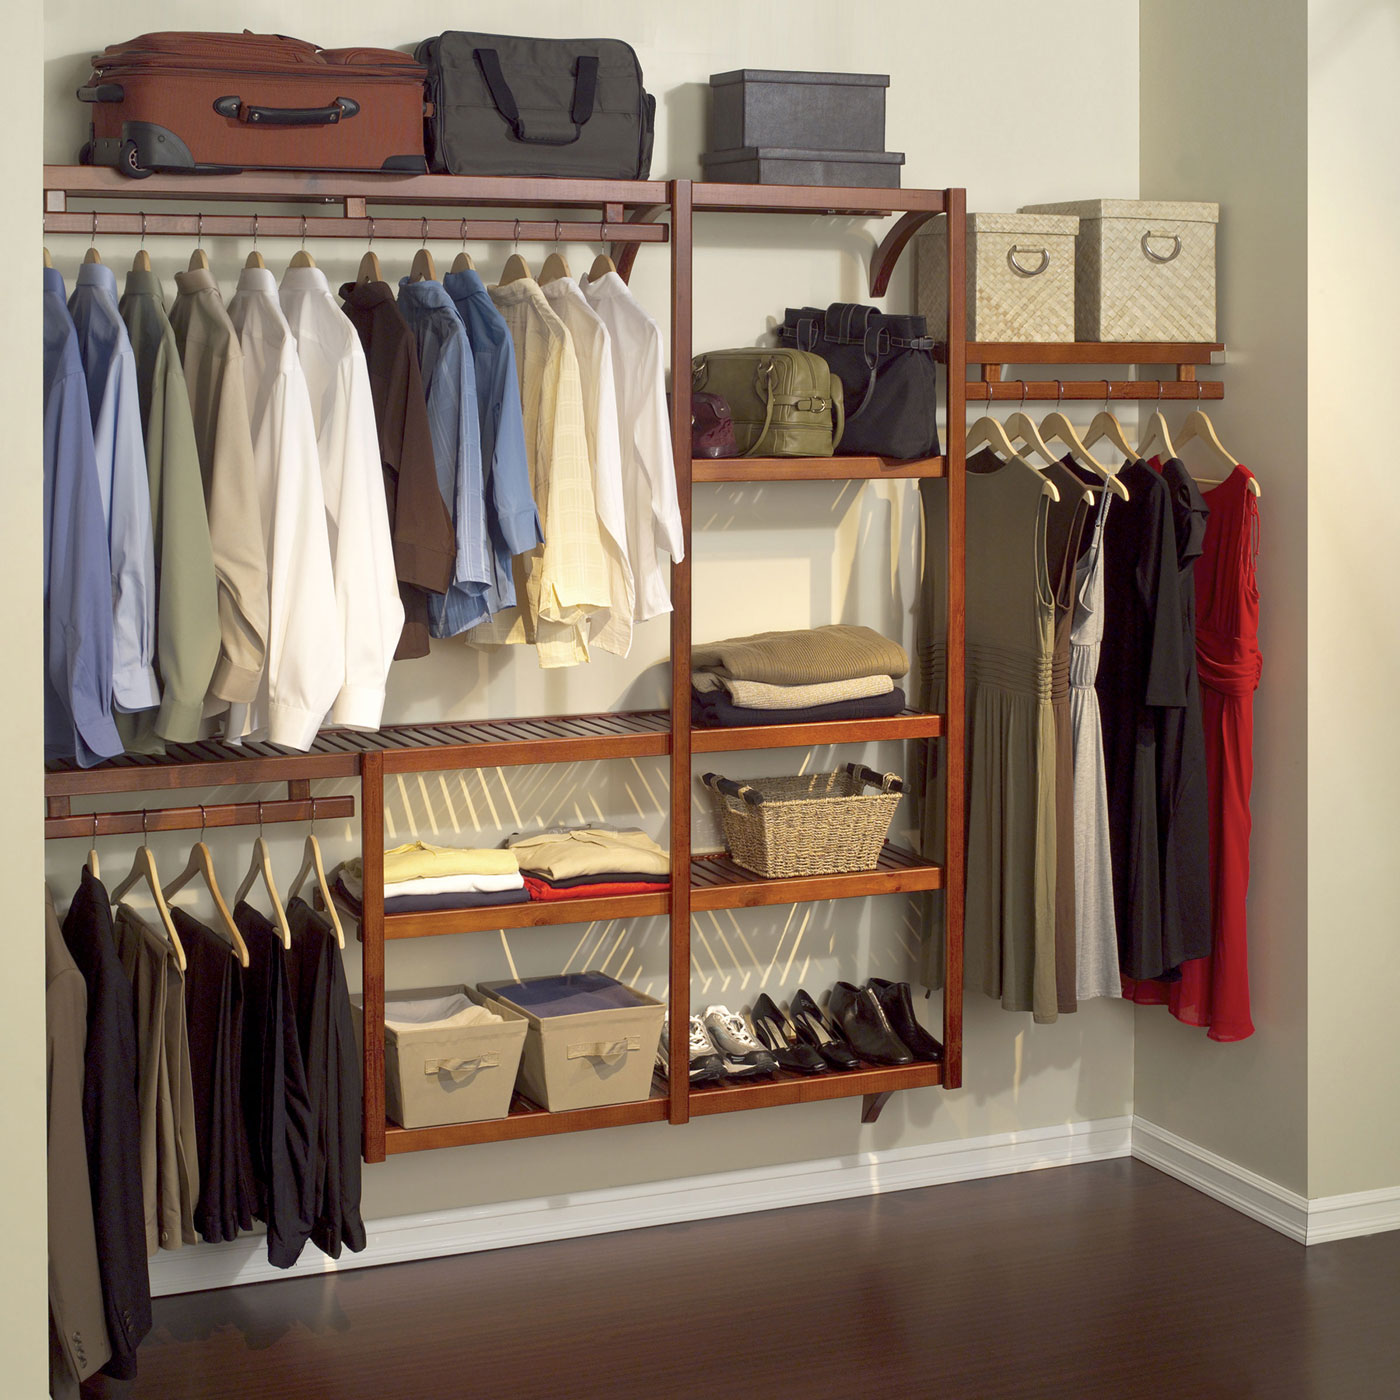 20 Craftsman Closet Design Ideas